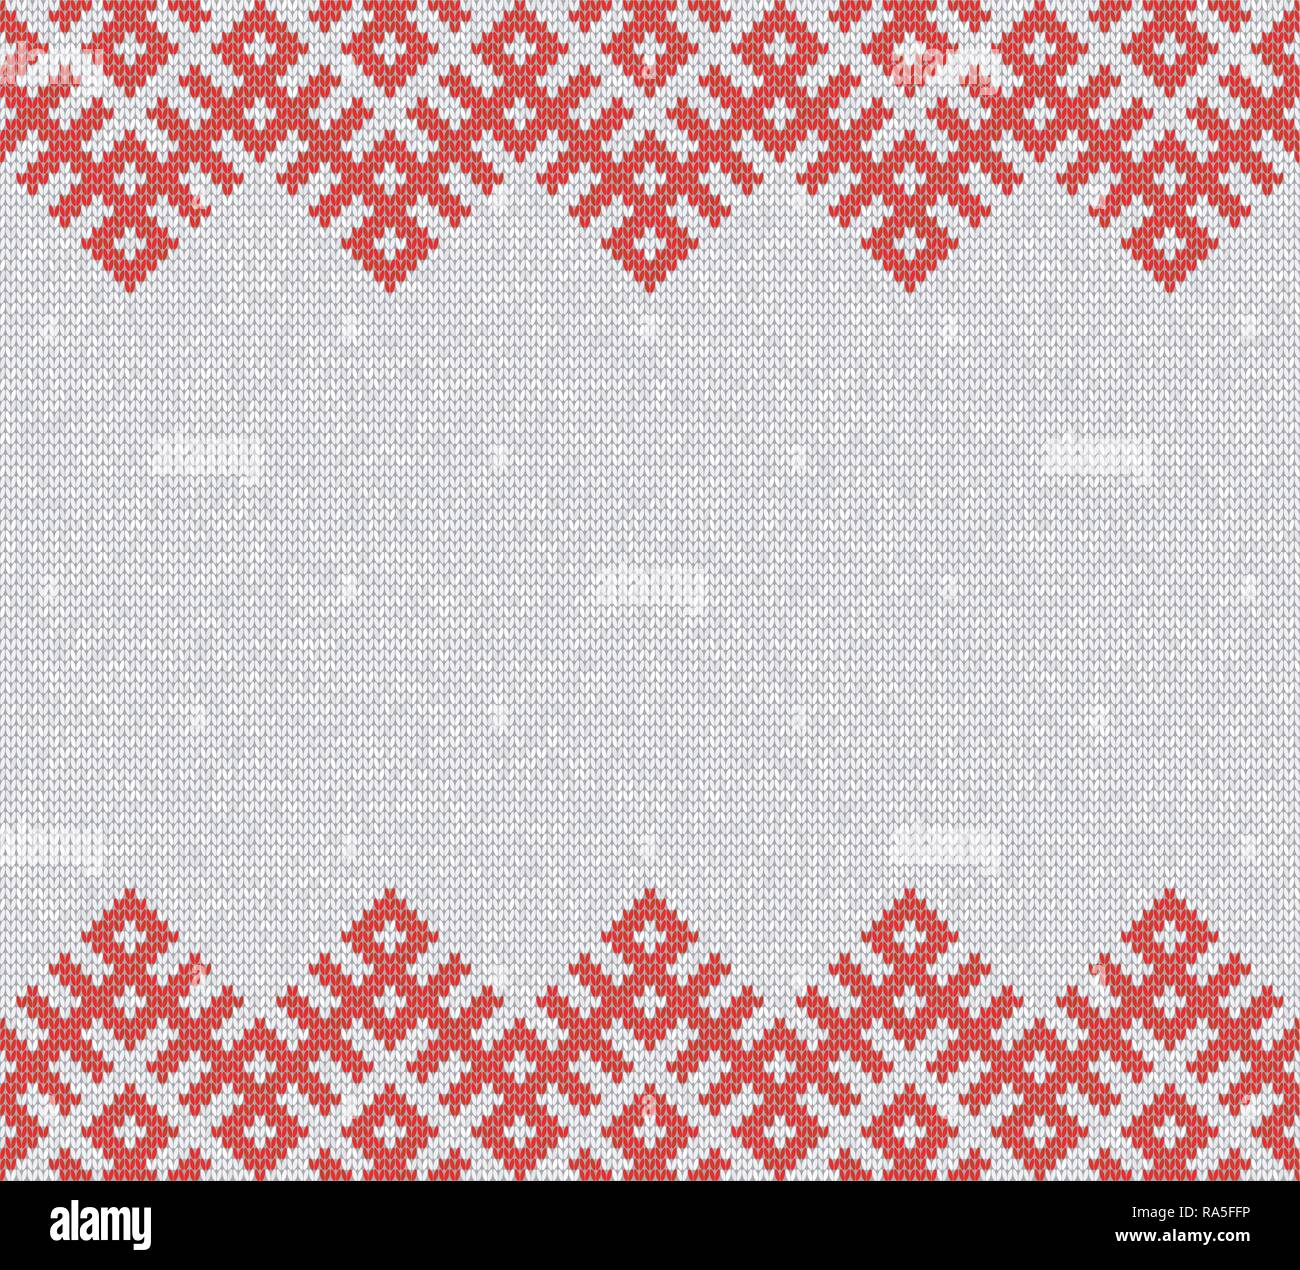 Seamless Knitting Pattern.Based on traditional Russian ornament.Red and white.Wool Knit Texture Imitation.Horisontal seamless.Banner and invitation te - Stock Vector